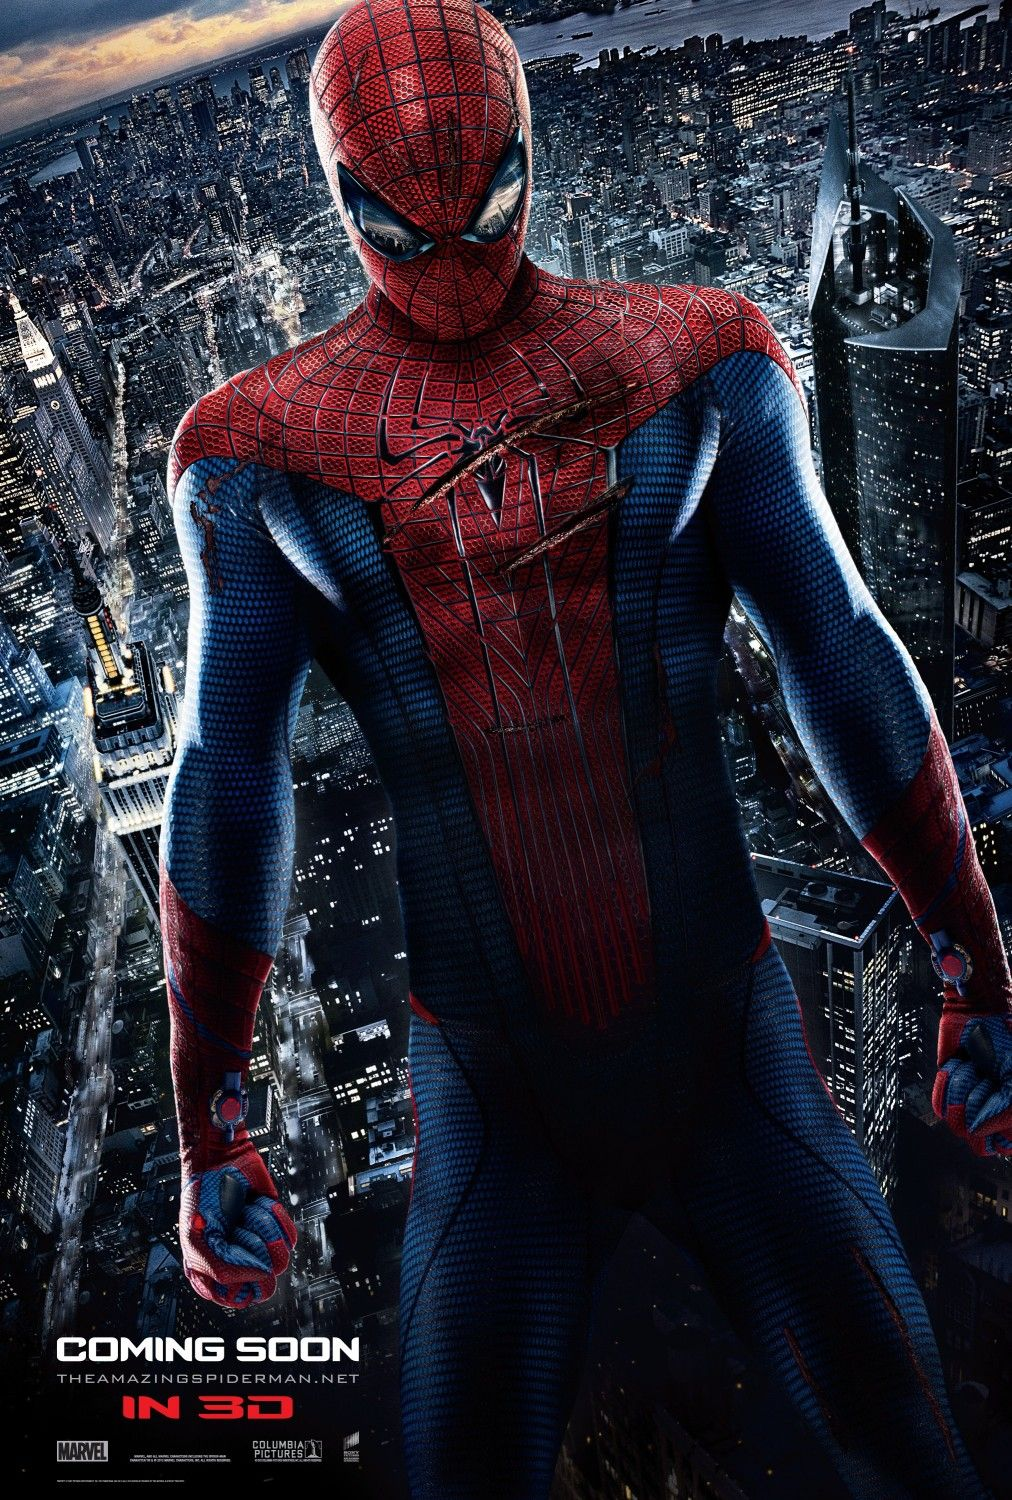 Movie Poster Inspiration The Amazing Spider Man Amazing Spiderman Movie Spiderman Amazing Spiderman